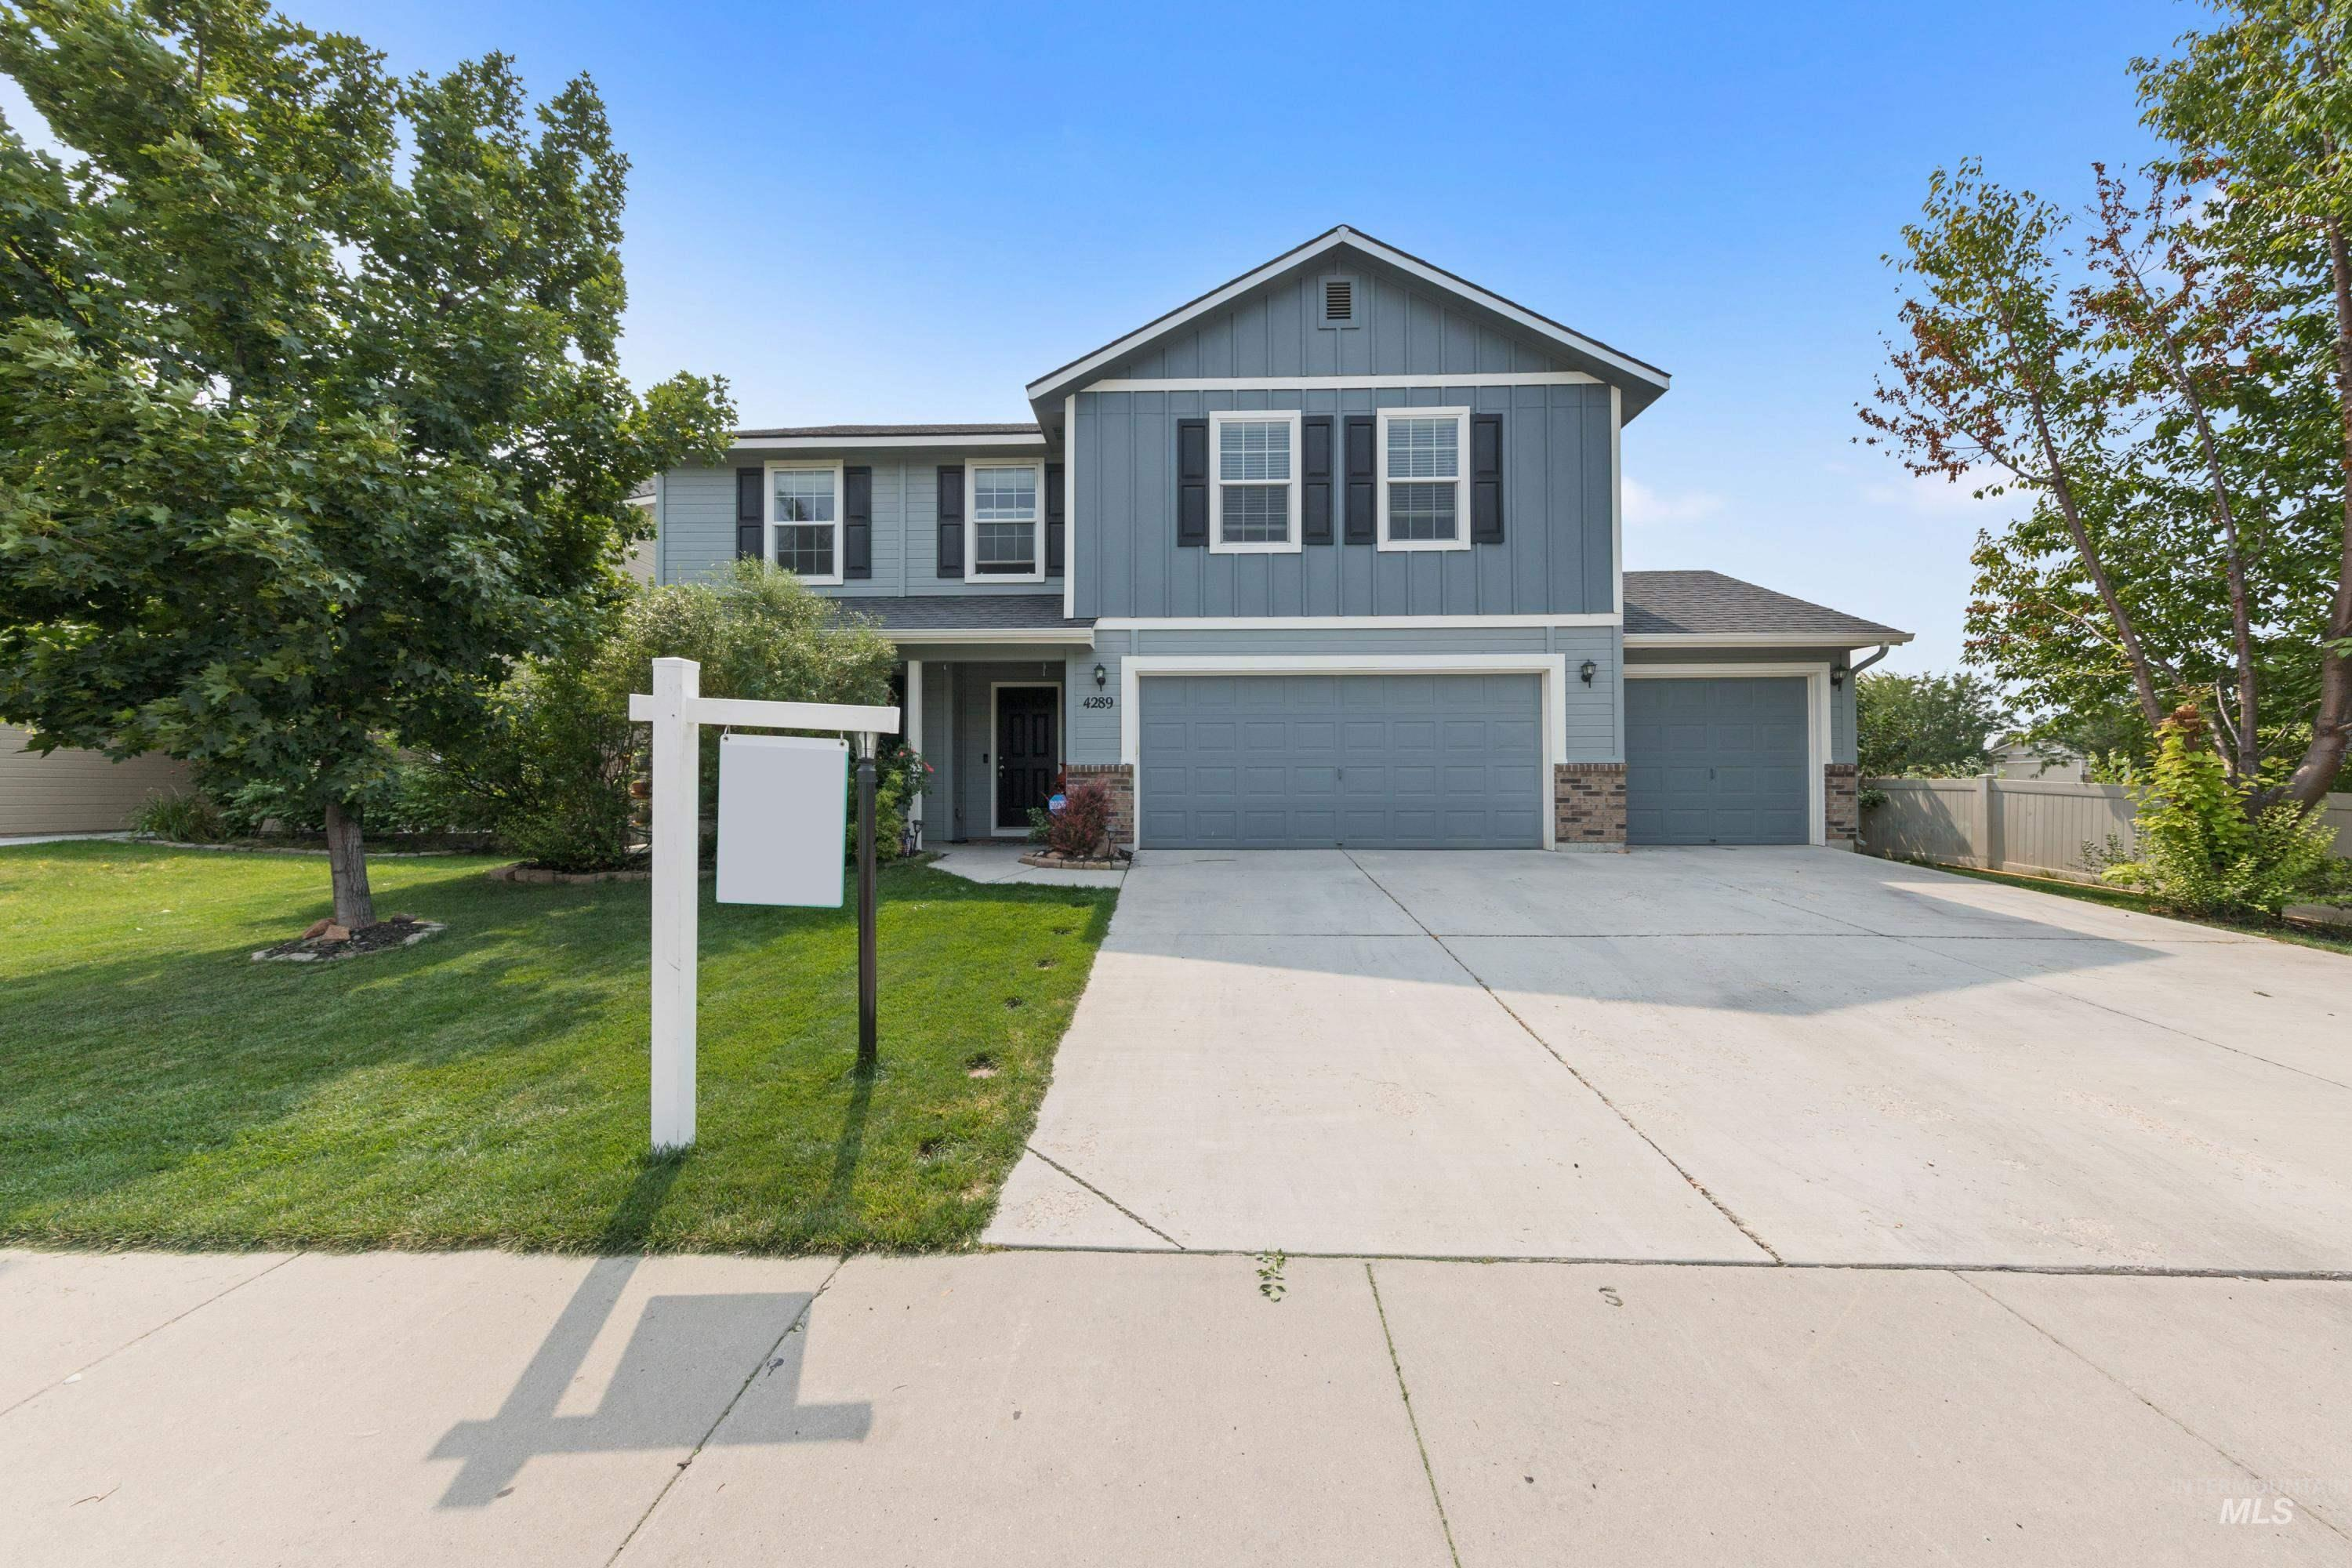 Nice home in convenient location. This home features a downstairs bedroom with large dining and living room. Kitchen with island. Large upstairs master has plenty of room with private master bath and walk-in closet. Nice extra bonus area upstairs. Large, fenced yard with mature trees and a 3 car garage. - Kami K Stock, Voice: 208-409-4829, Homie, Main: 520-940-0583, https://www.kamistock.com